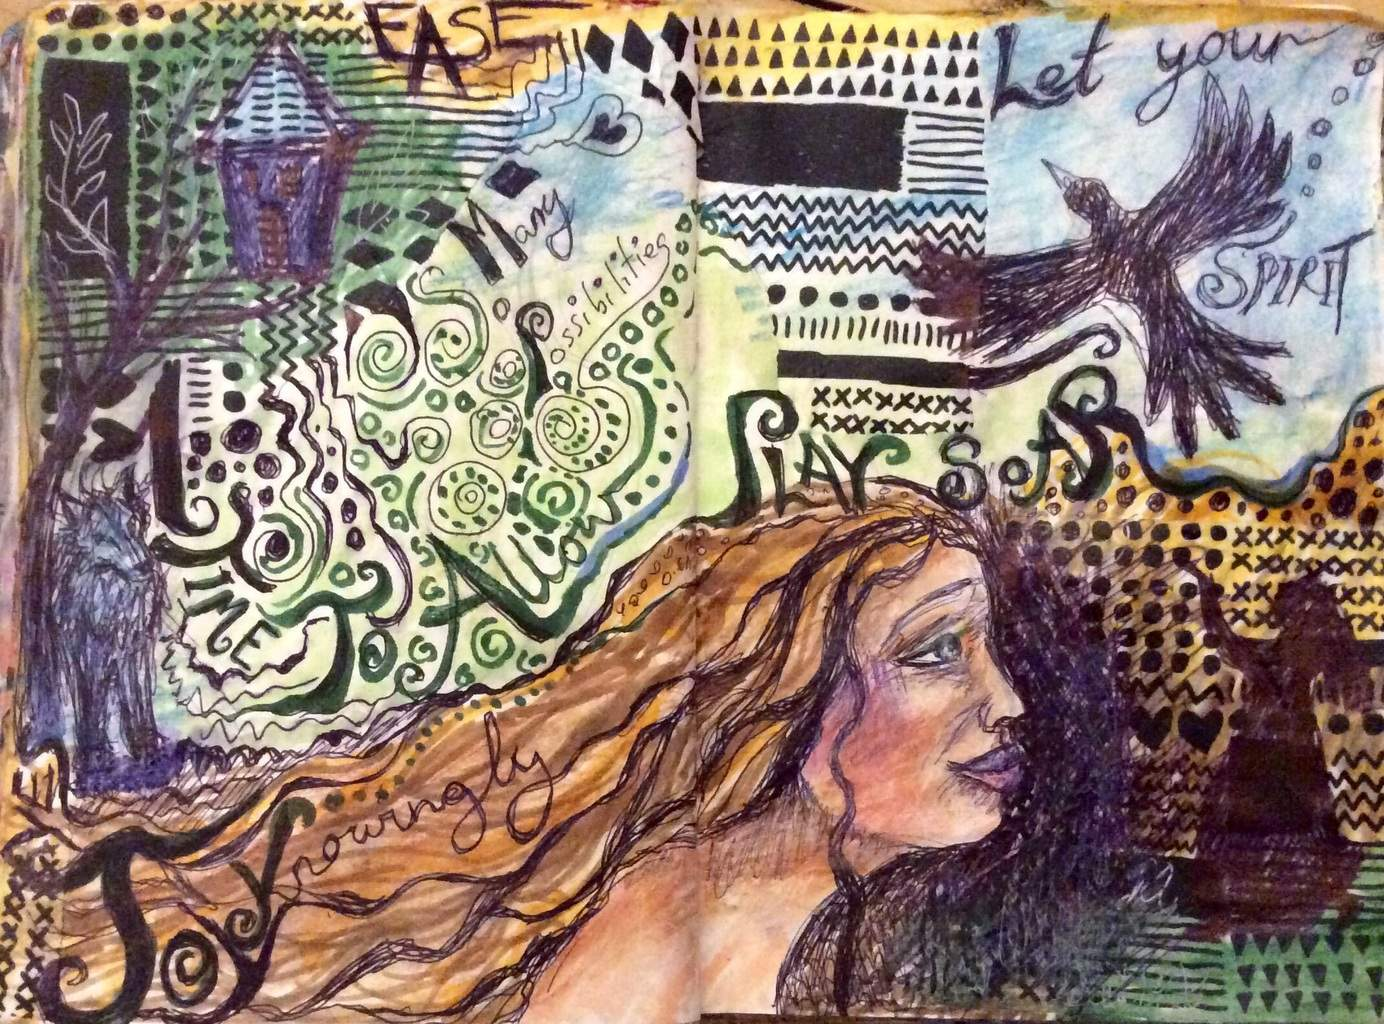 Joy journal page. Original artwork by Cheryle Bannon©.